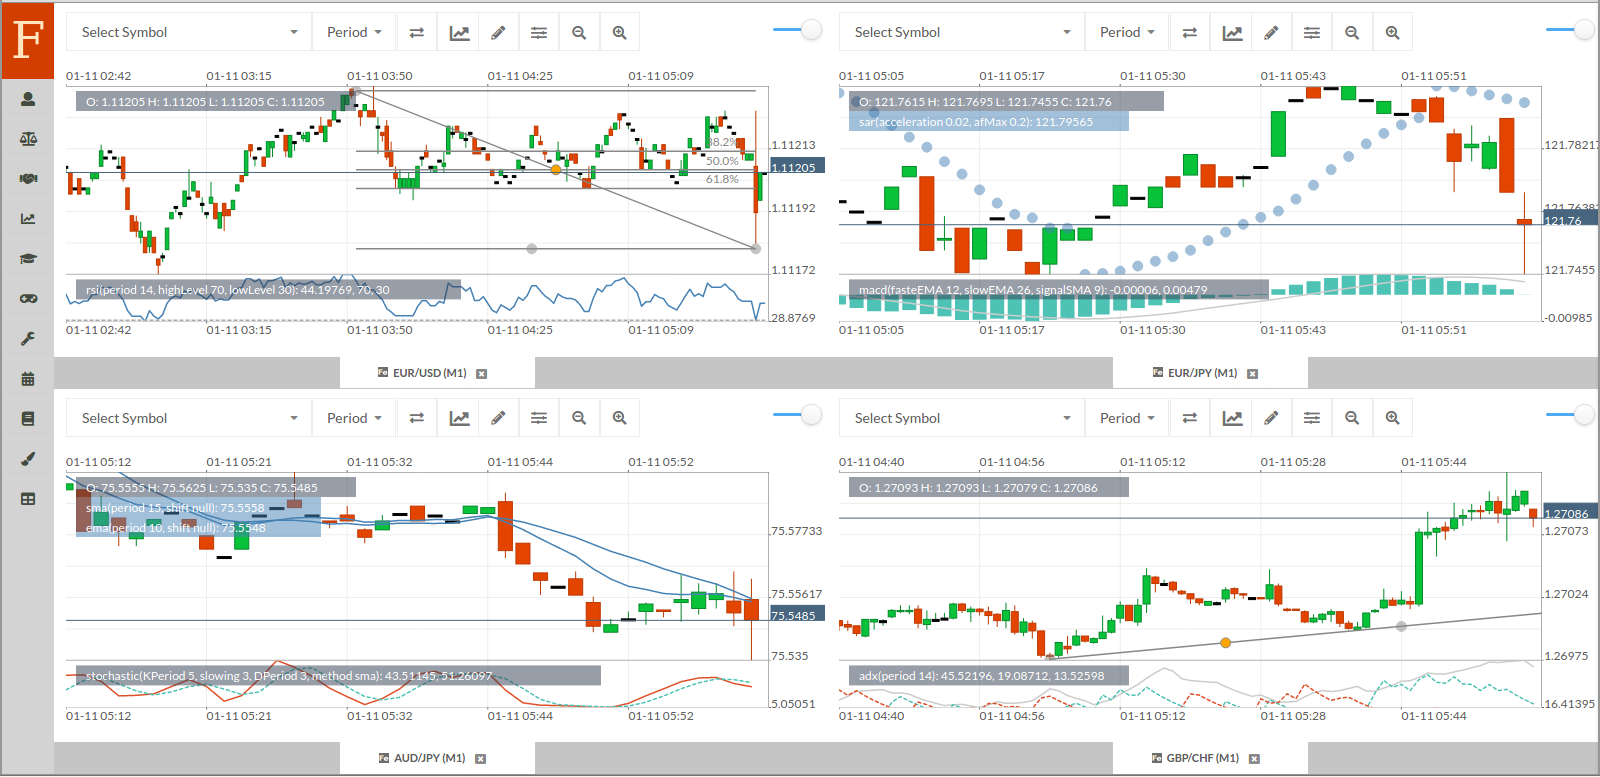 Fintechee: Automated Forex Trading helps traders monitor the market movements and generates trading signals